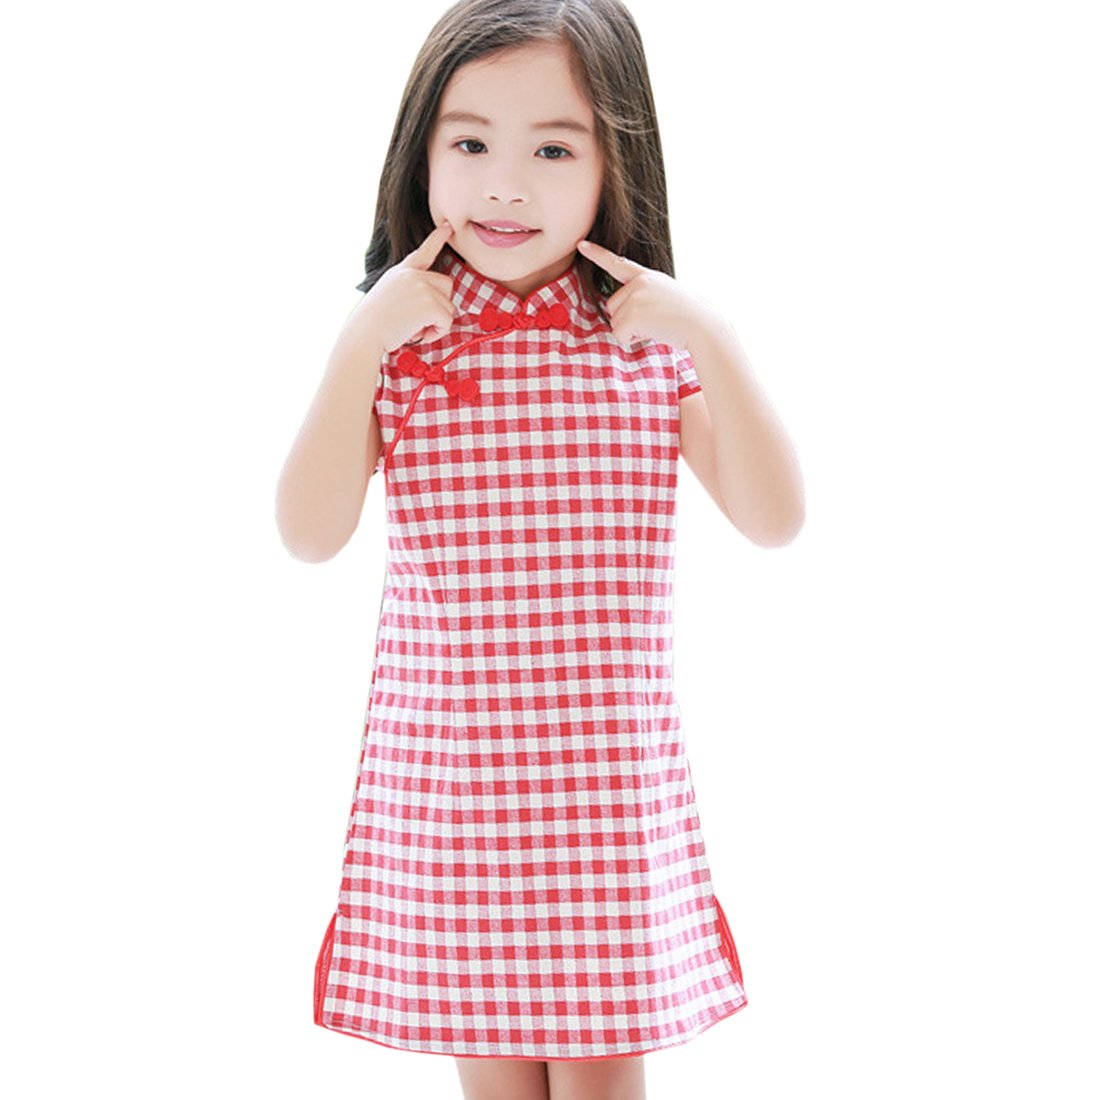 ACVIP Kids Little Girl's Checkered Cotton Chinese Qipao Dress (5-6 years/Tag 130, Red)